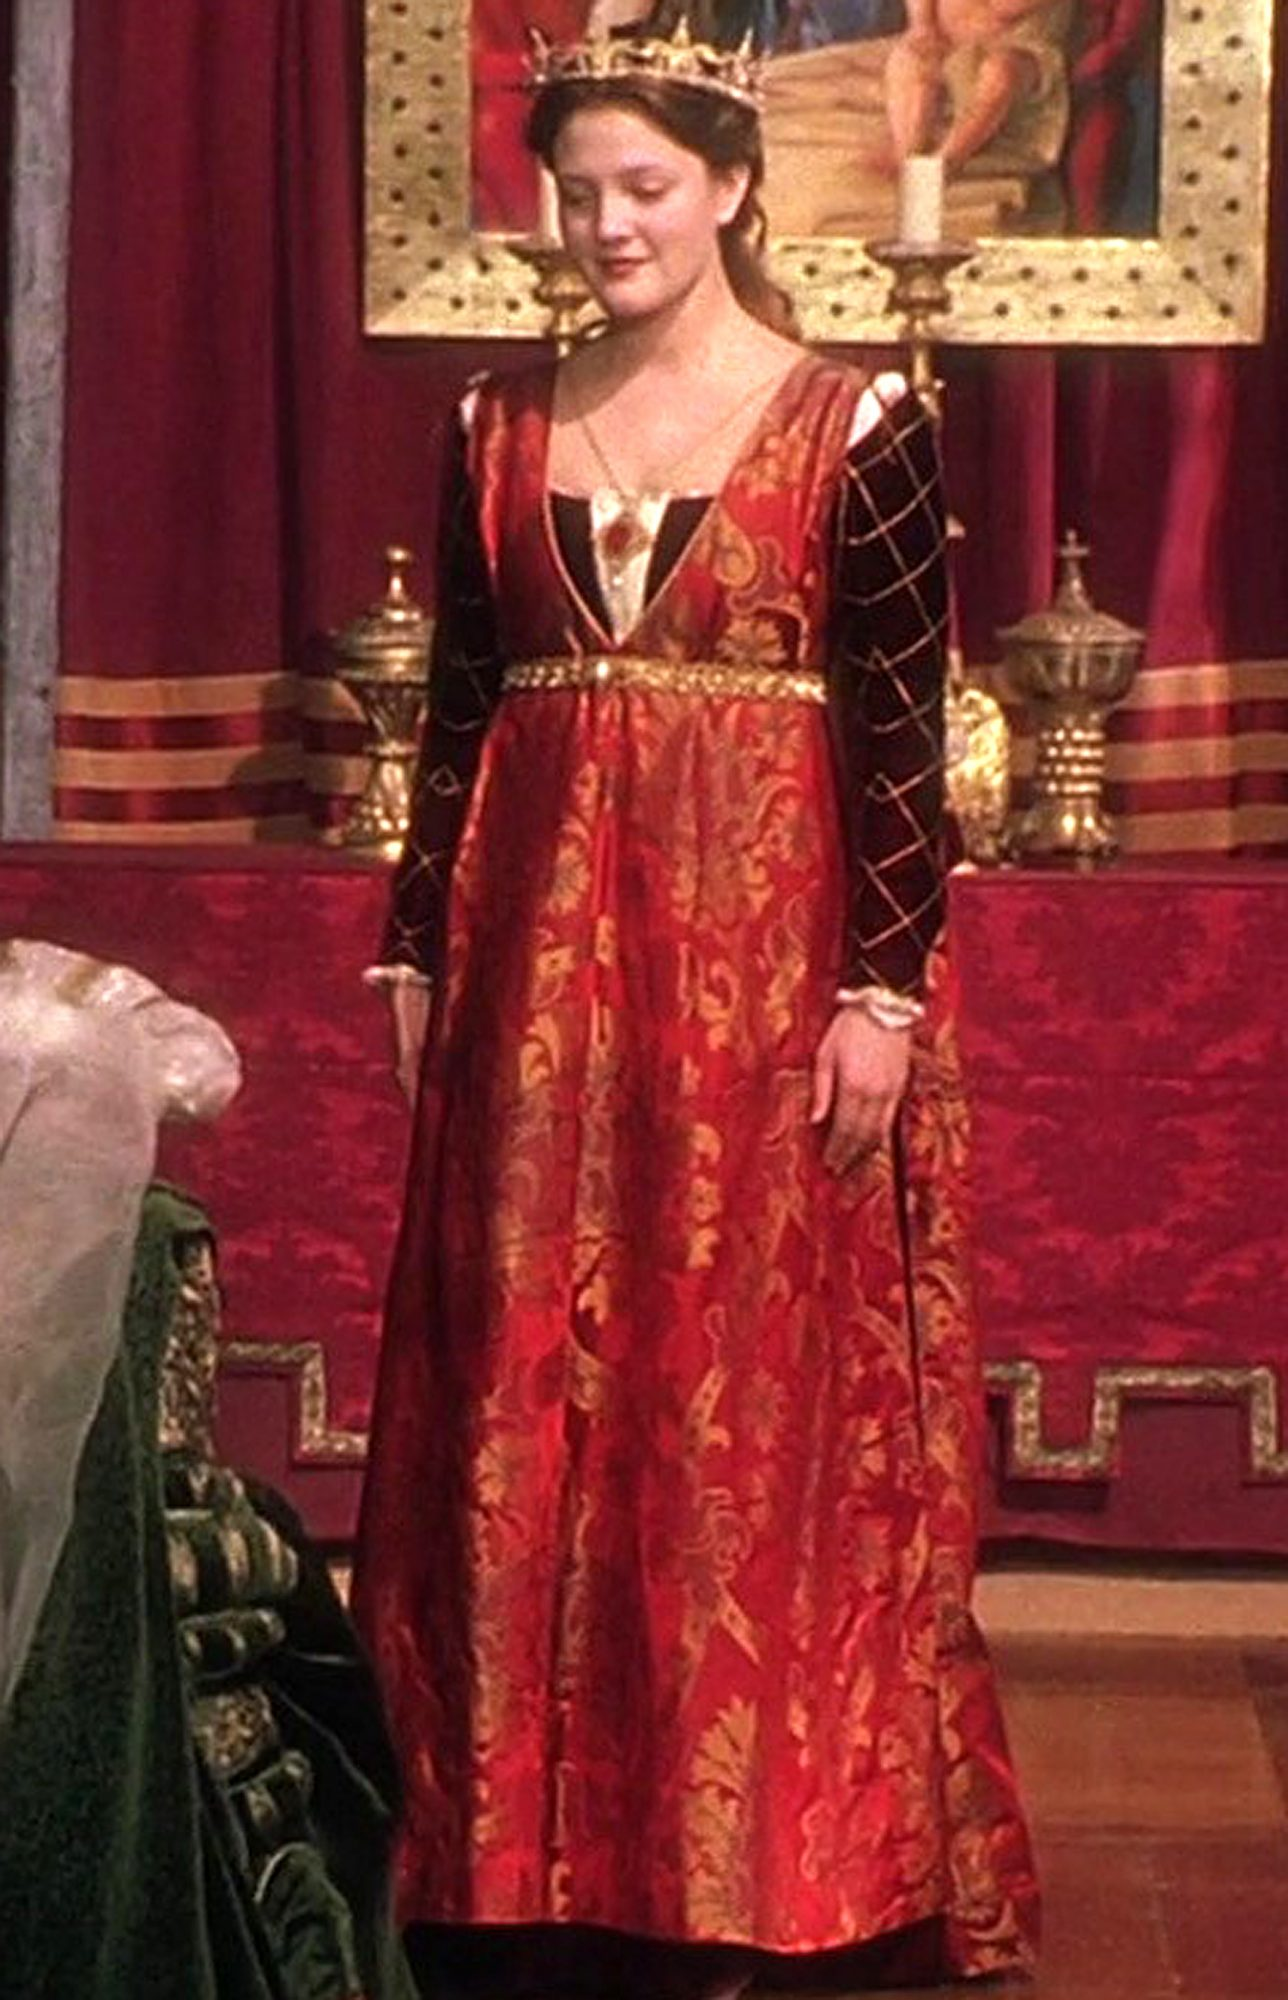 Drew Barrymore and Anjelica Huston in Ever After